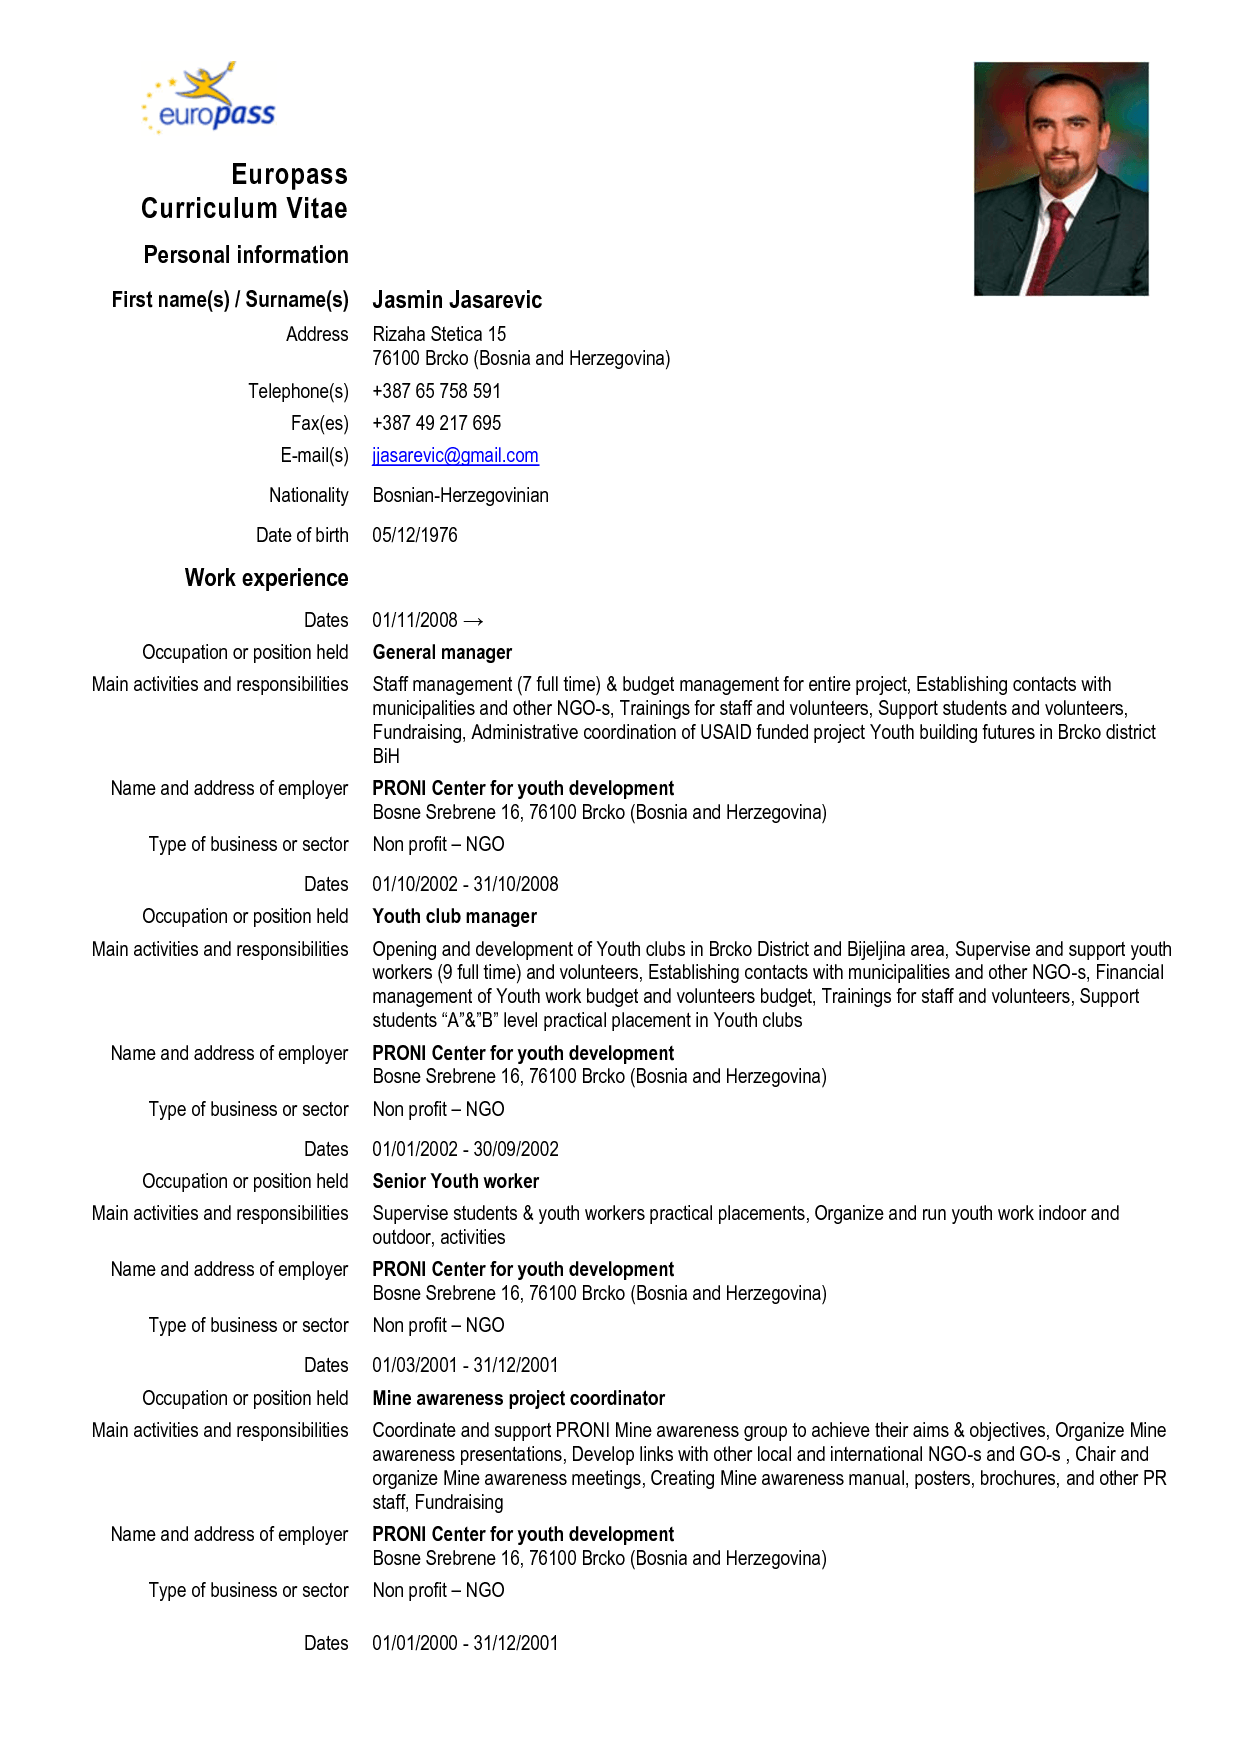 europass online cv english